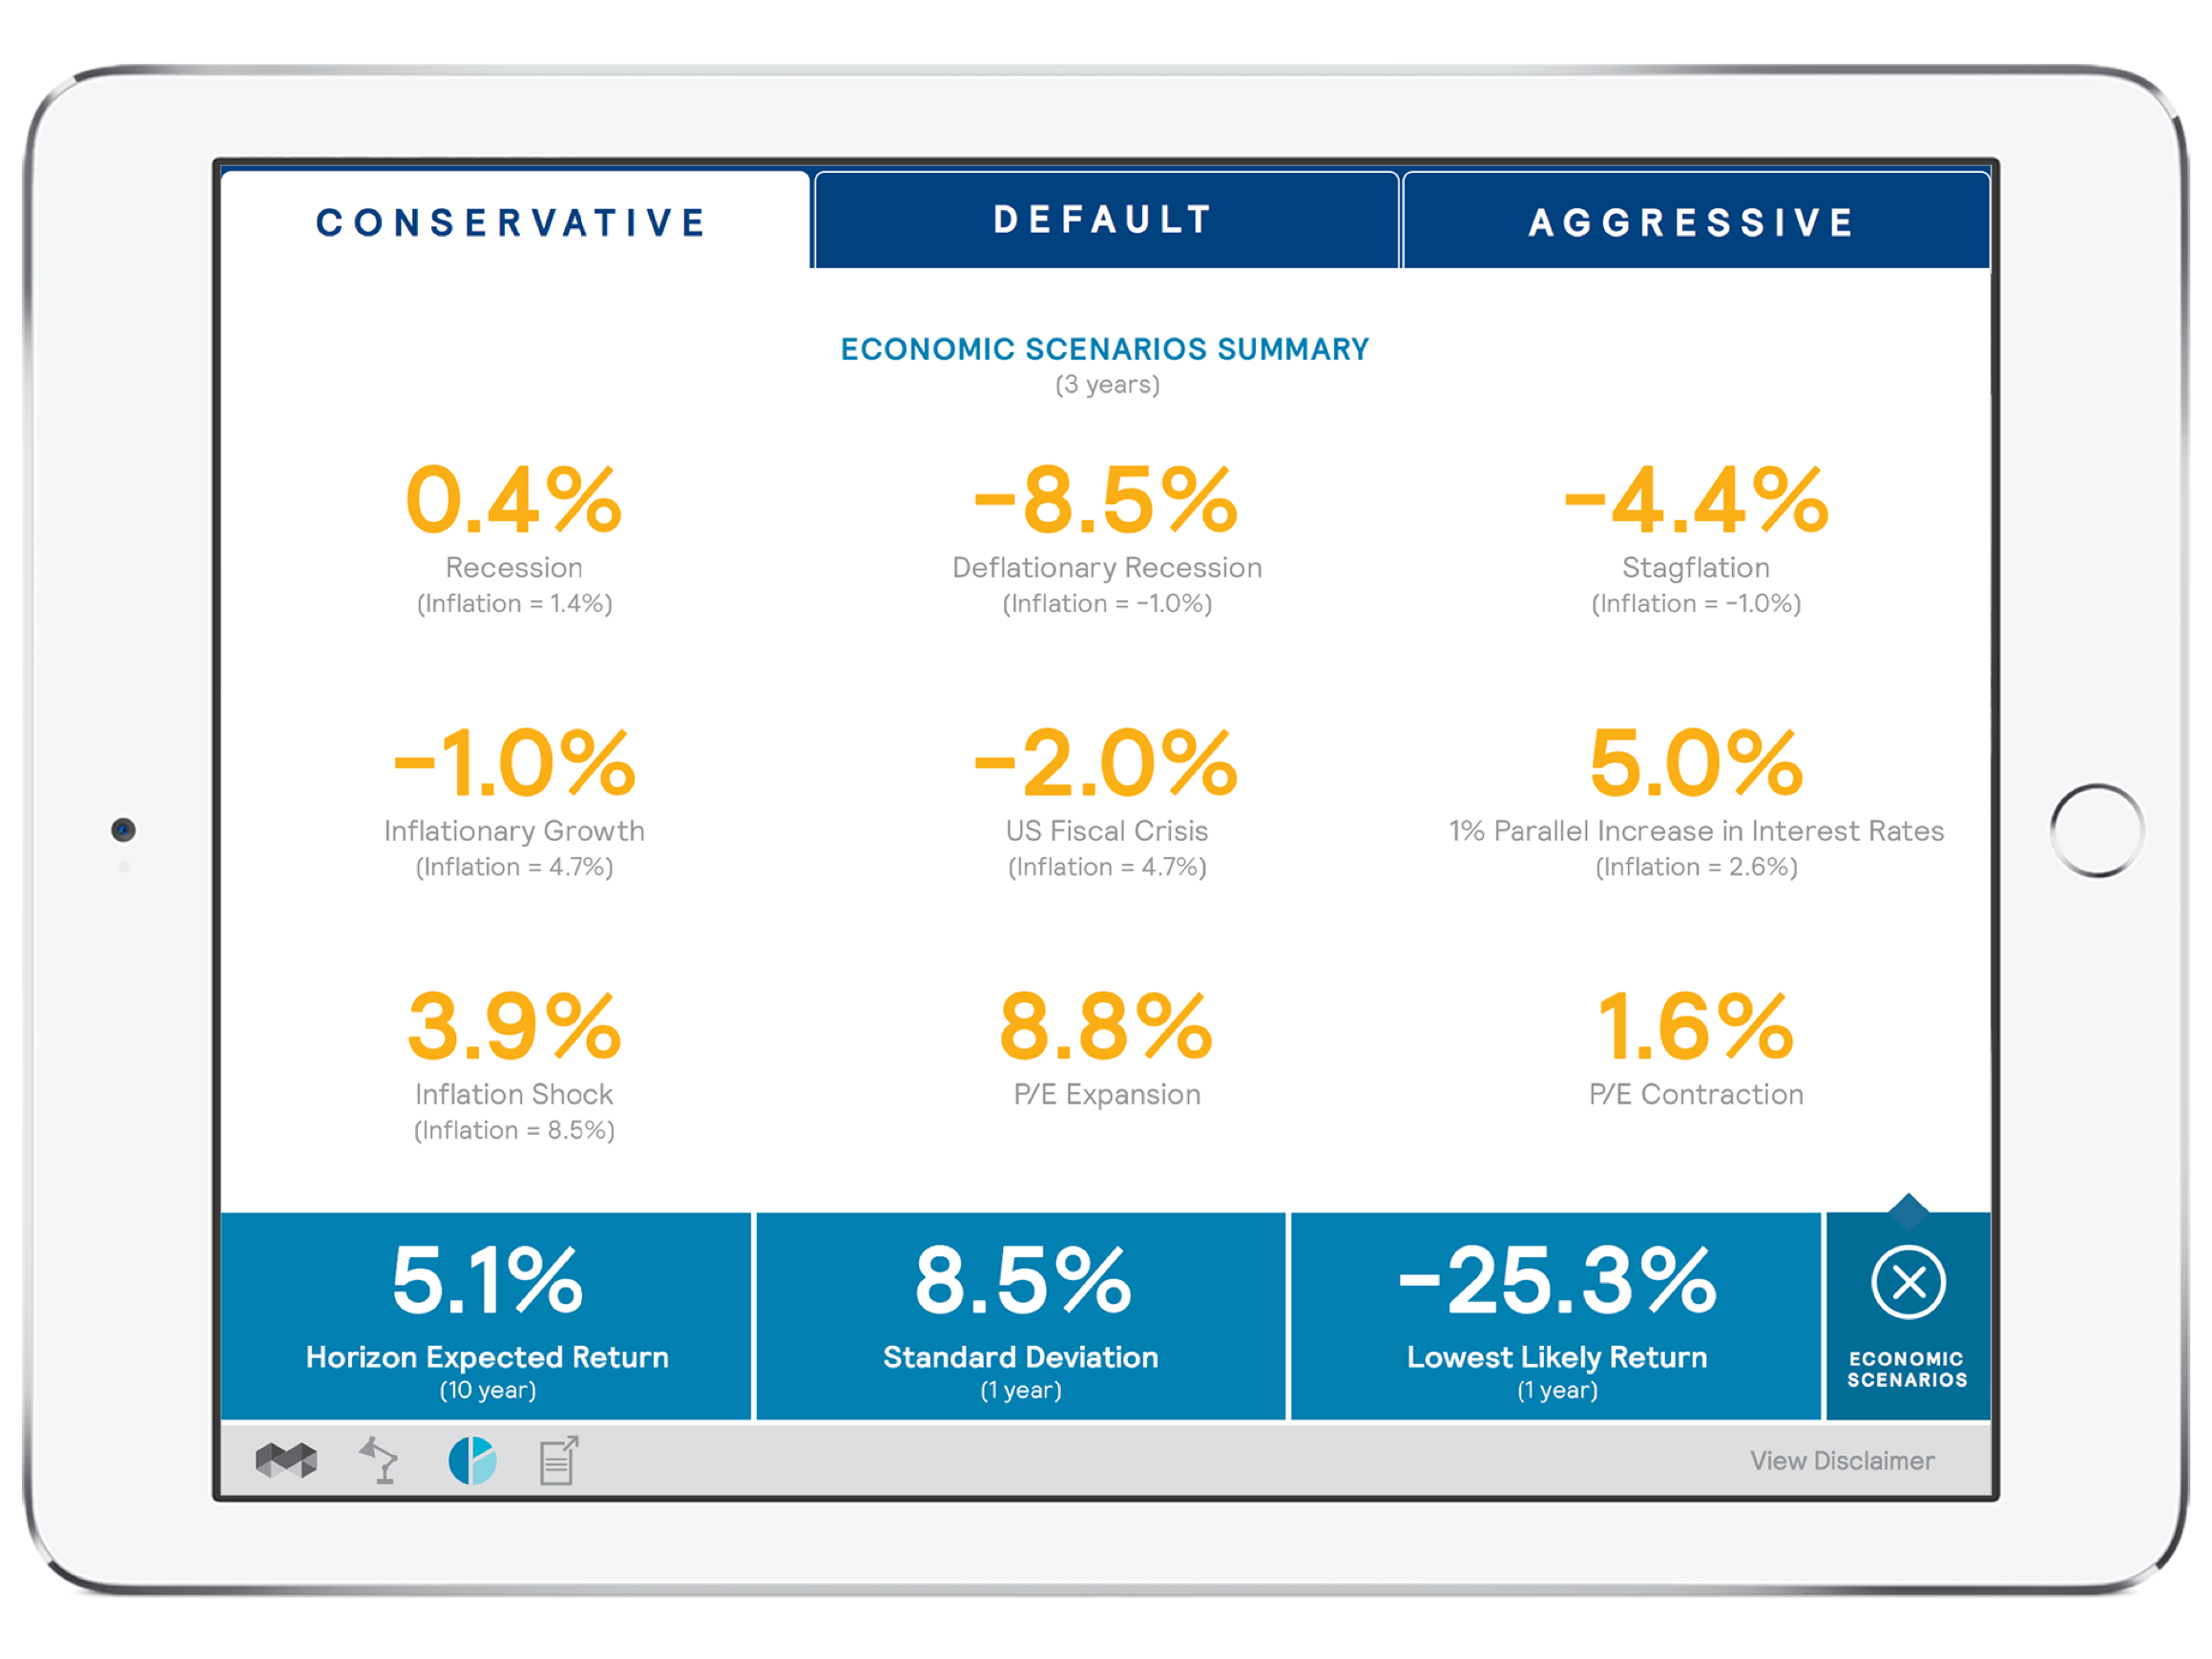 After. Users can view the economic scenarios for each model in a more graphic format. Each number is tappable to reveal more content.